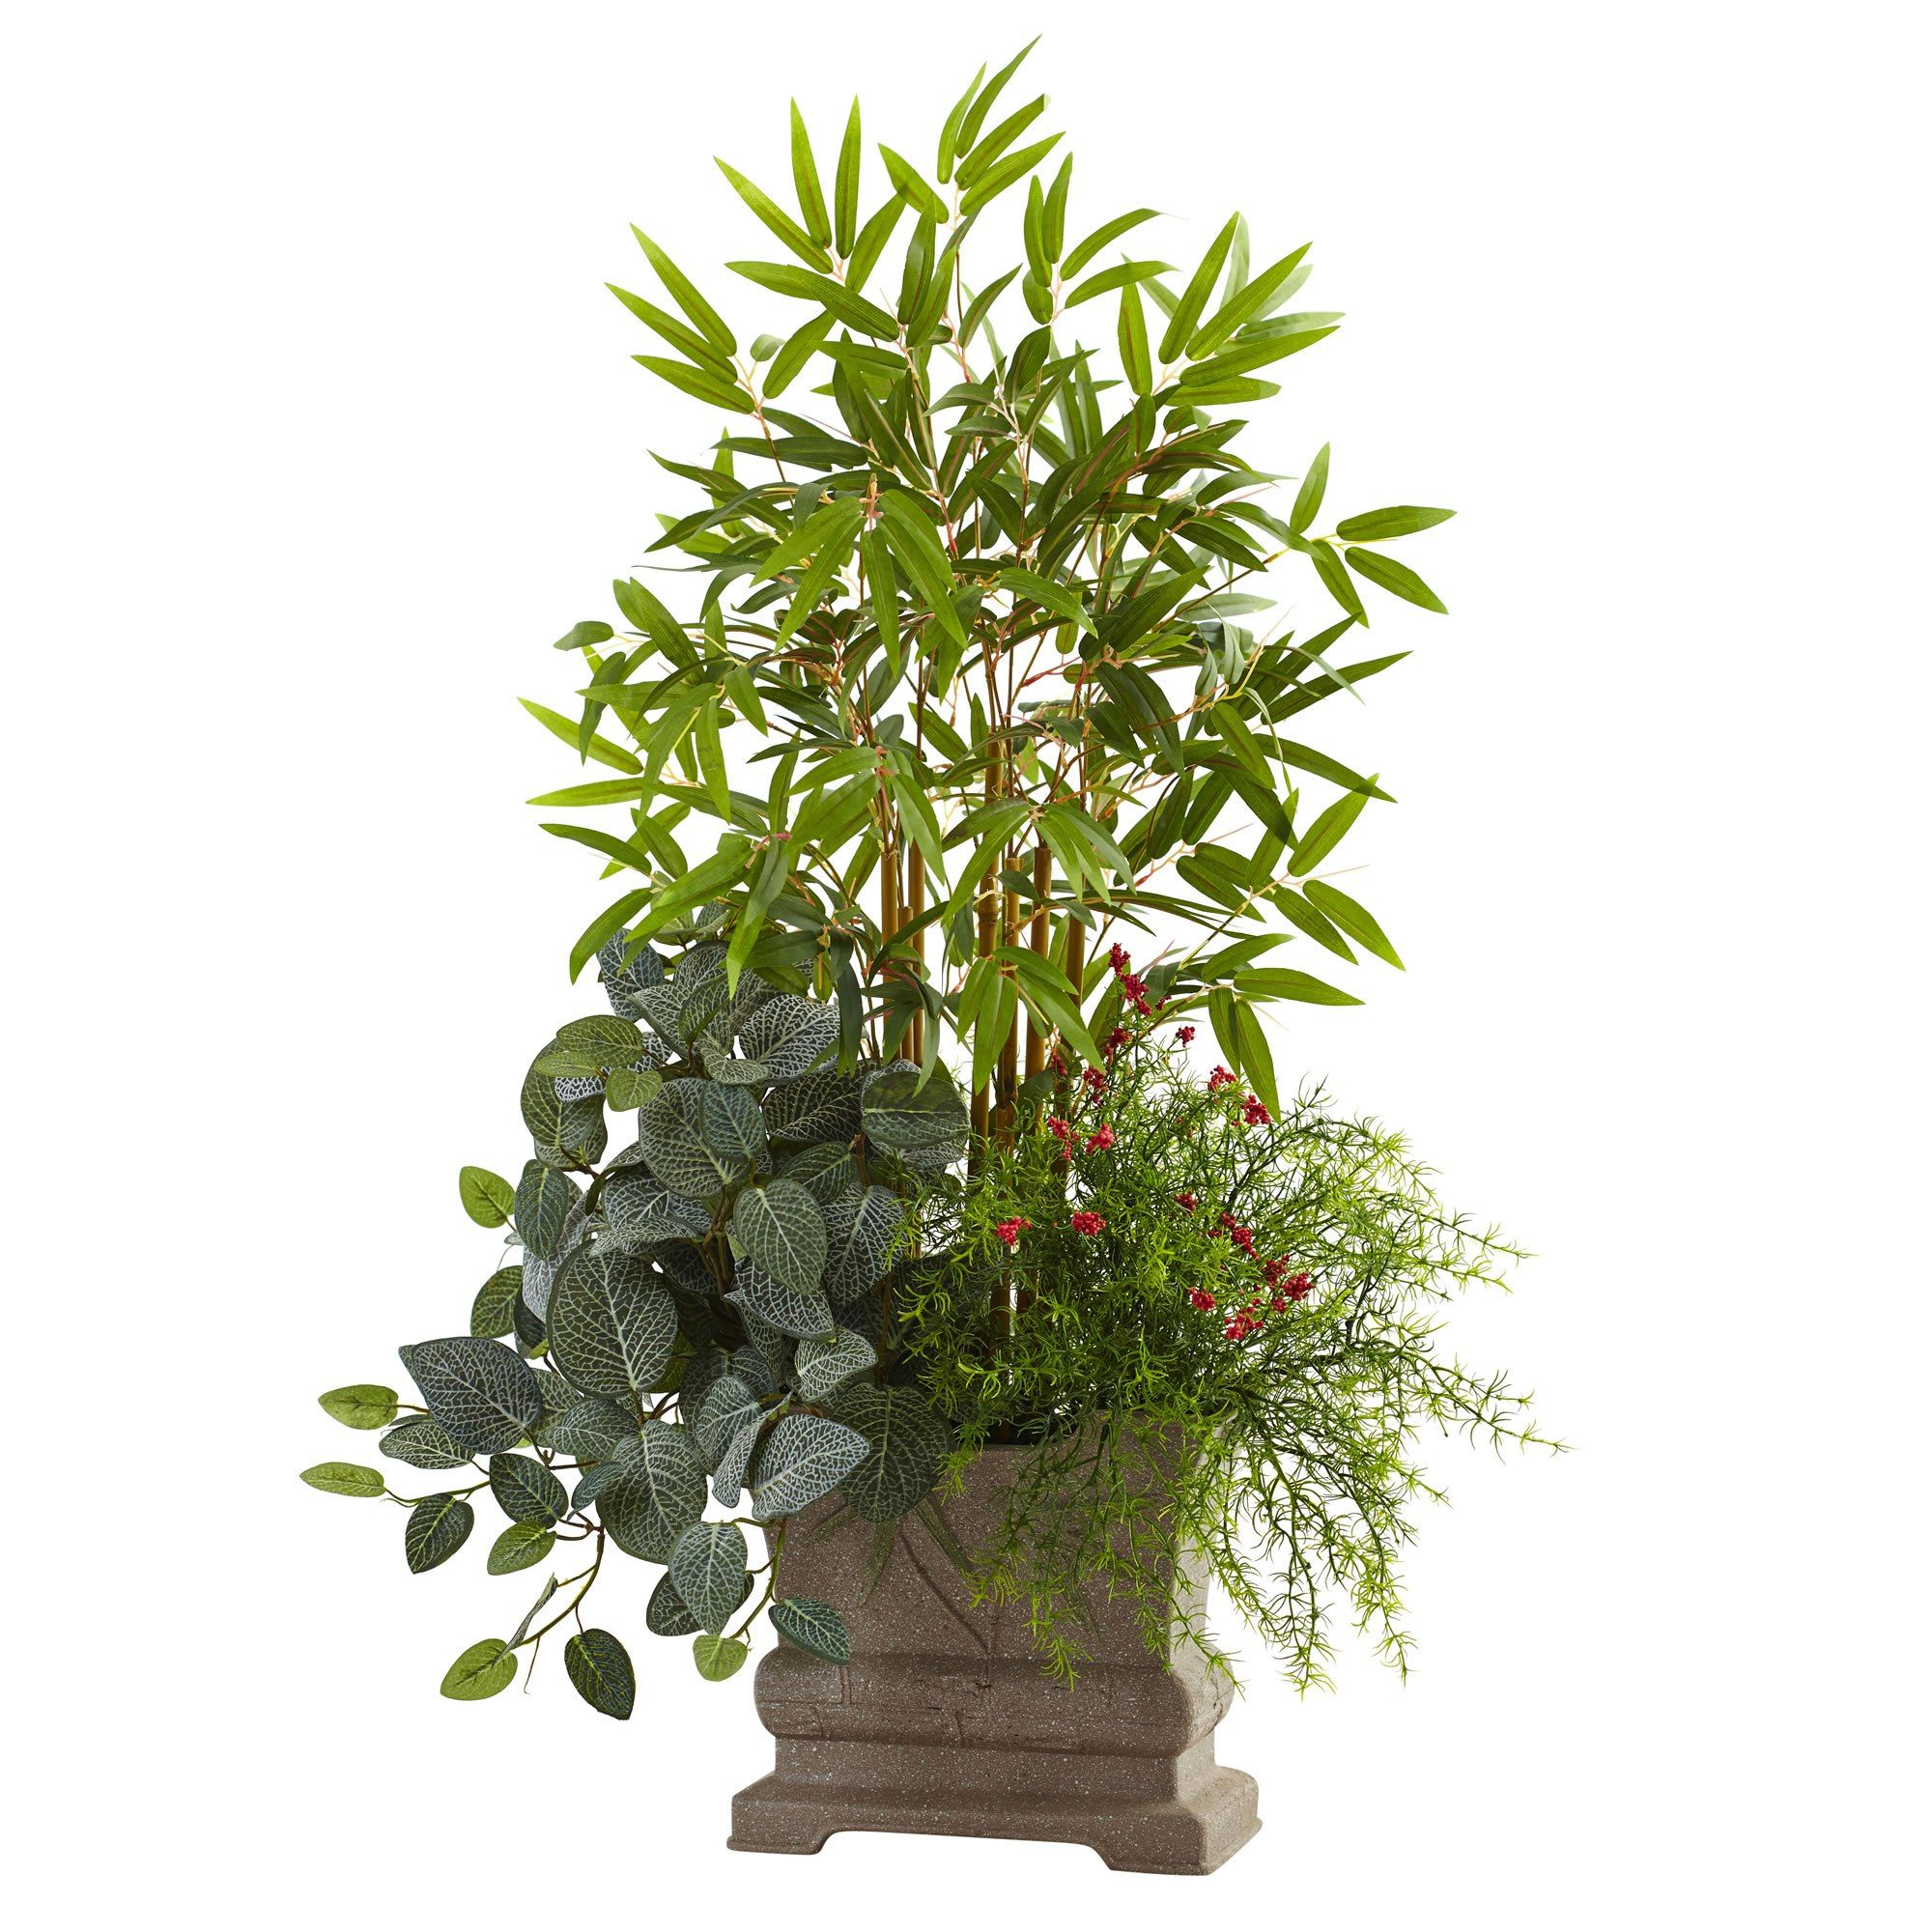 decorative this indoor and artificial planter bamboo a realistic makes tree pin green in faux tall striking slender